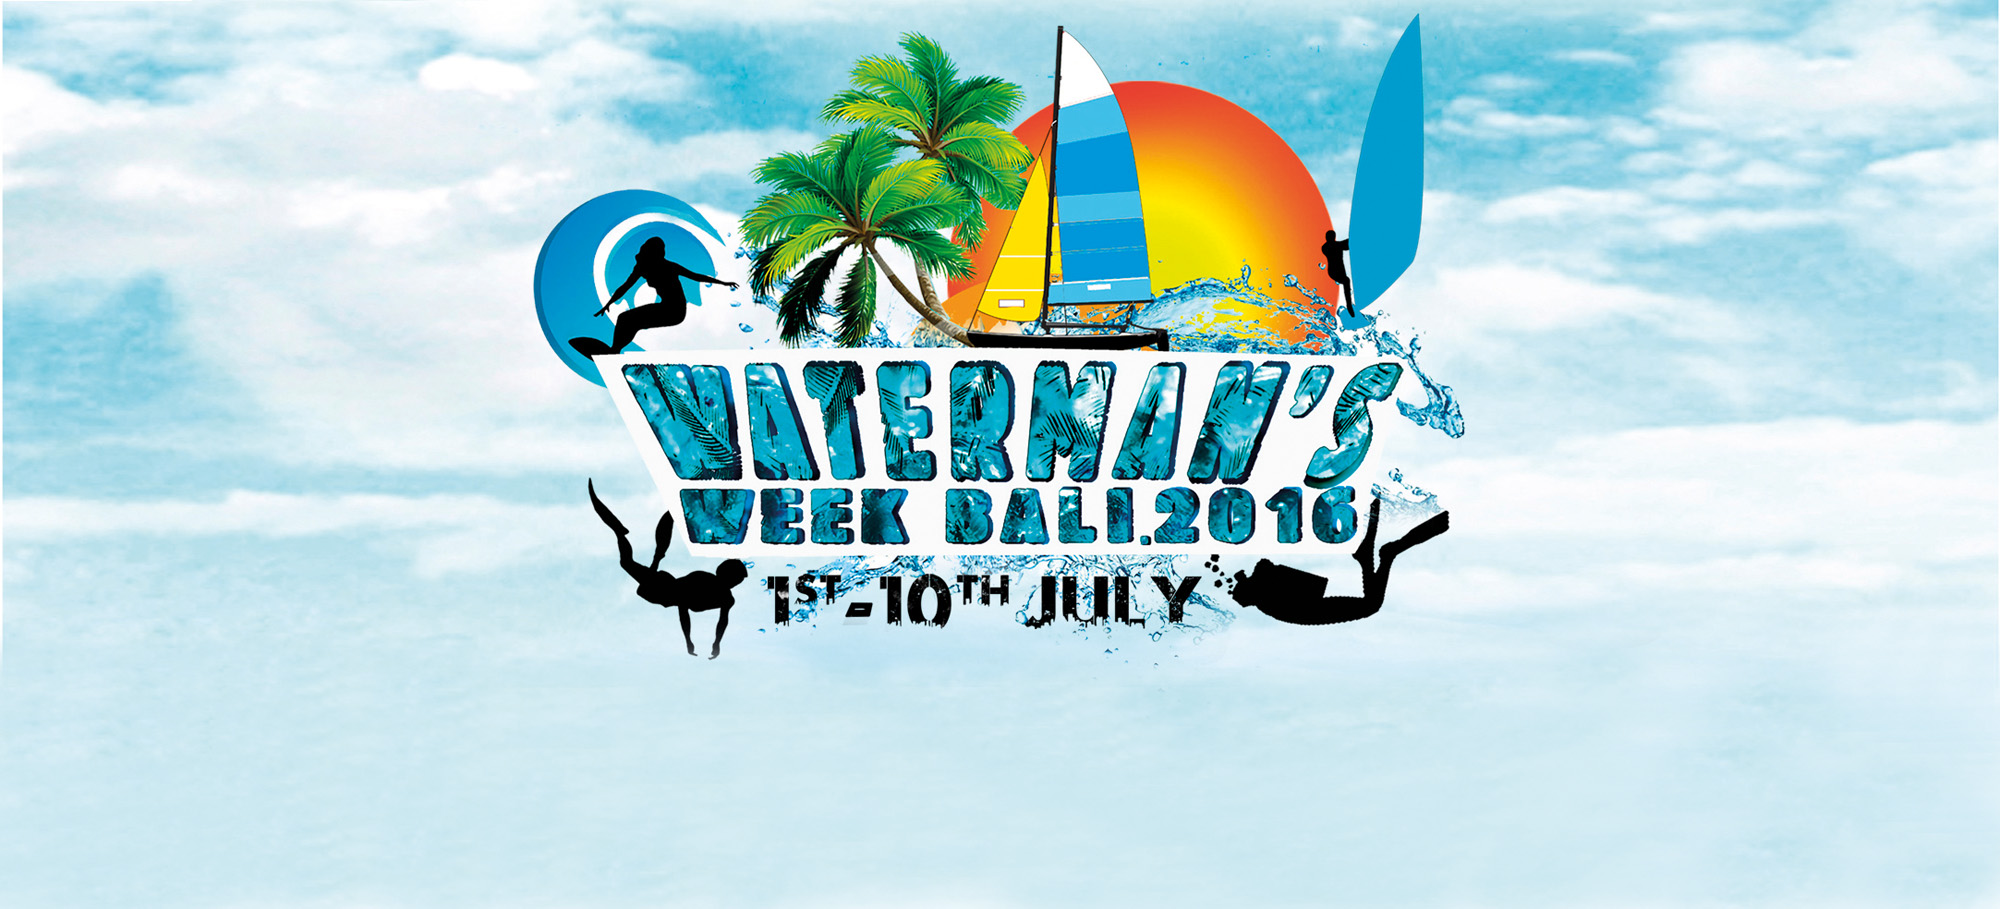 Watermans Week Flyer Bali_edit